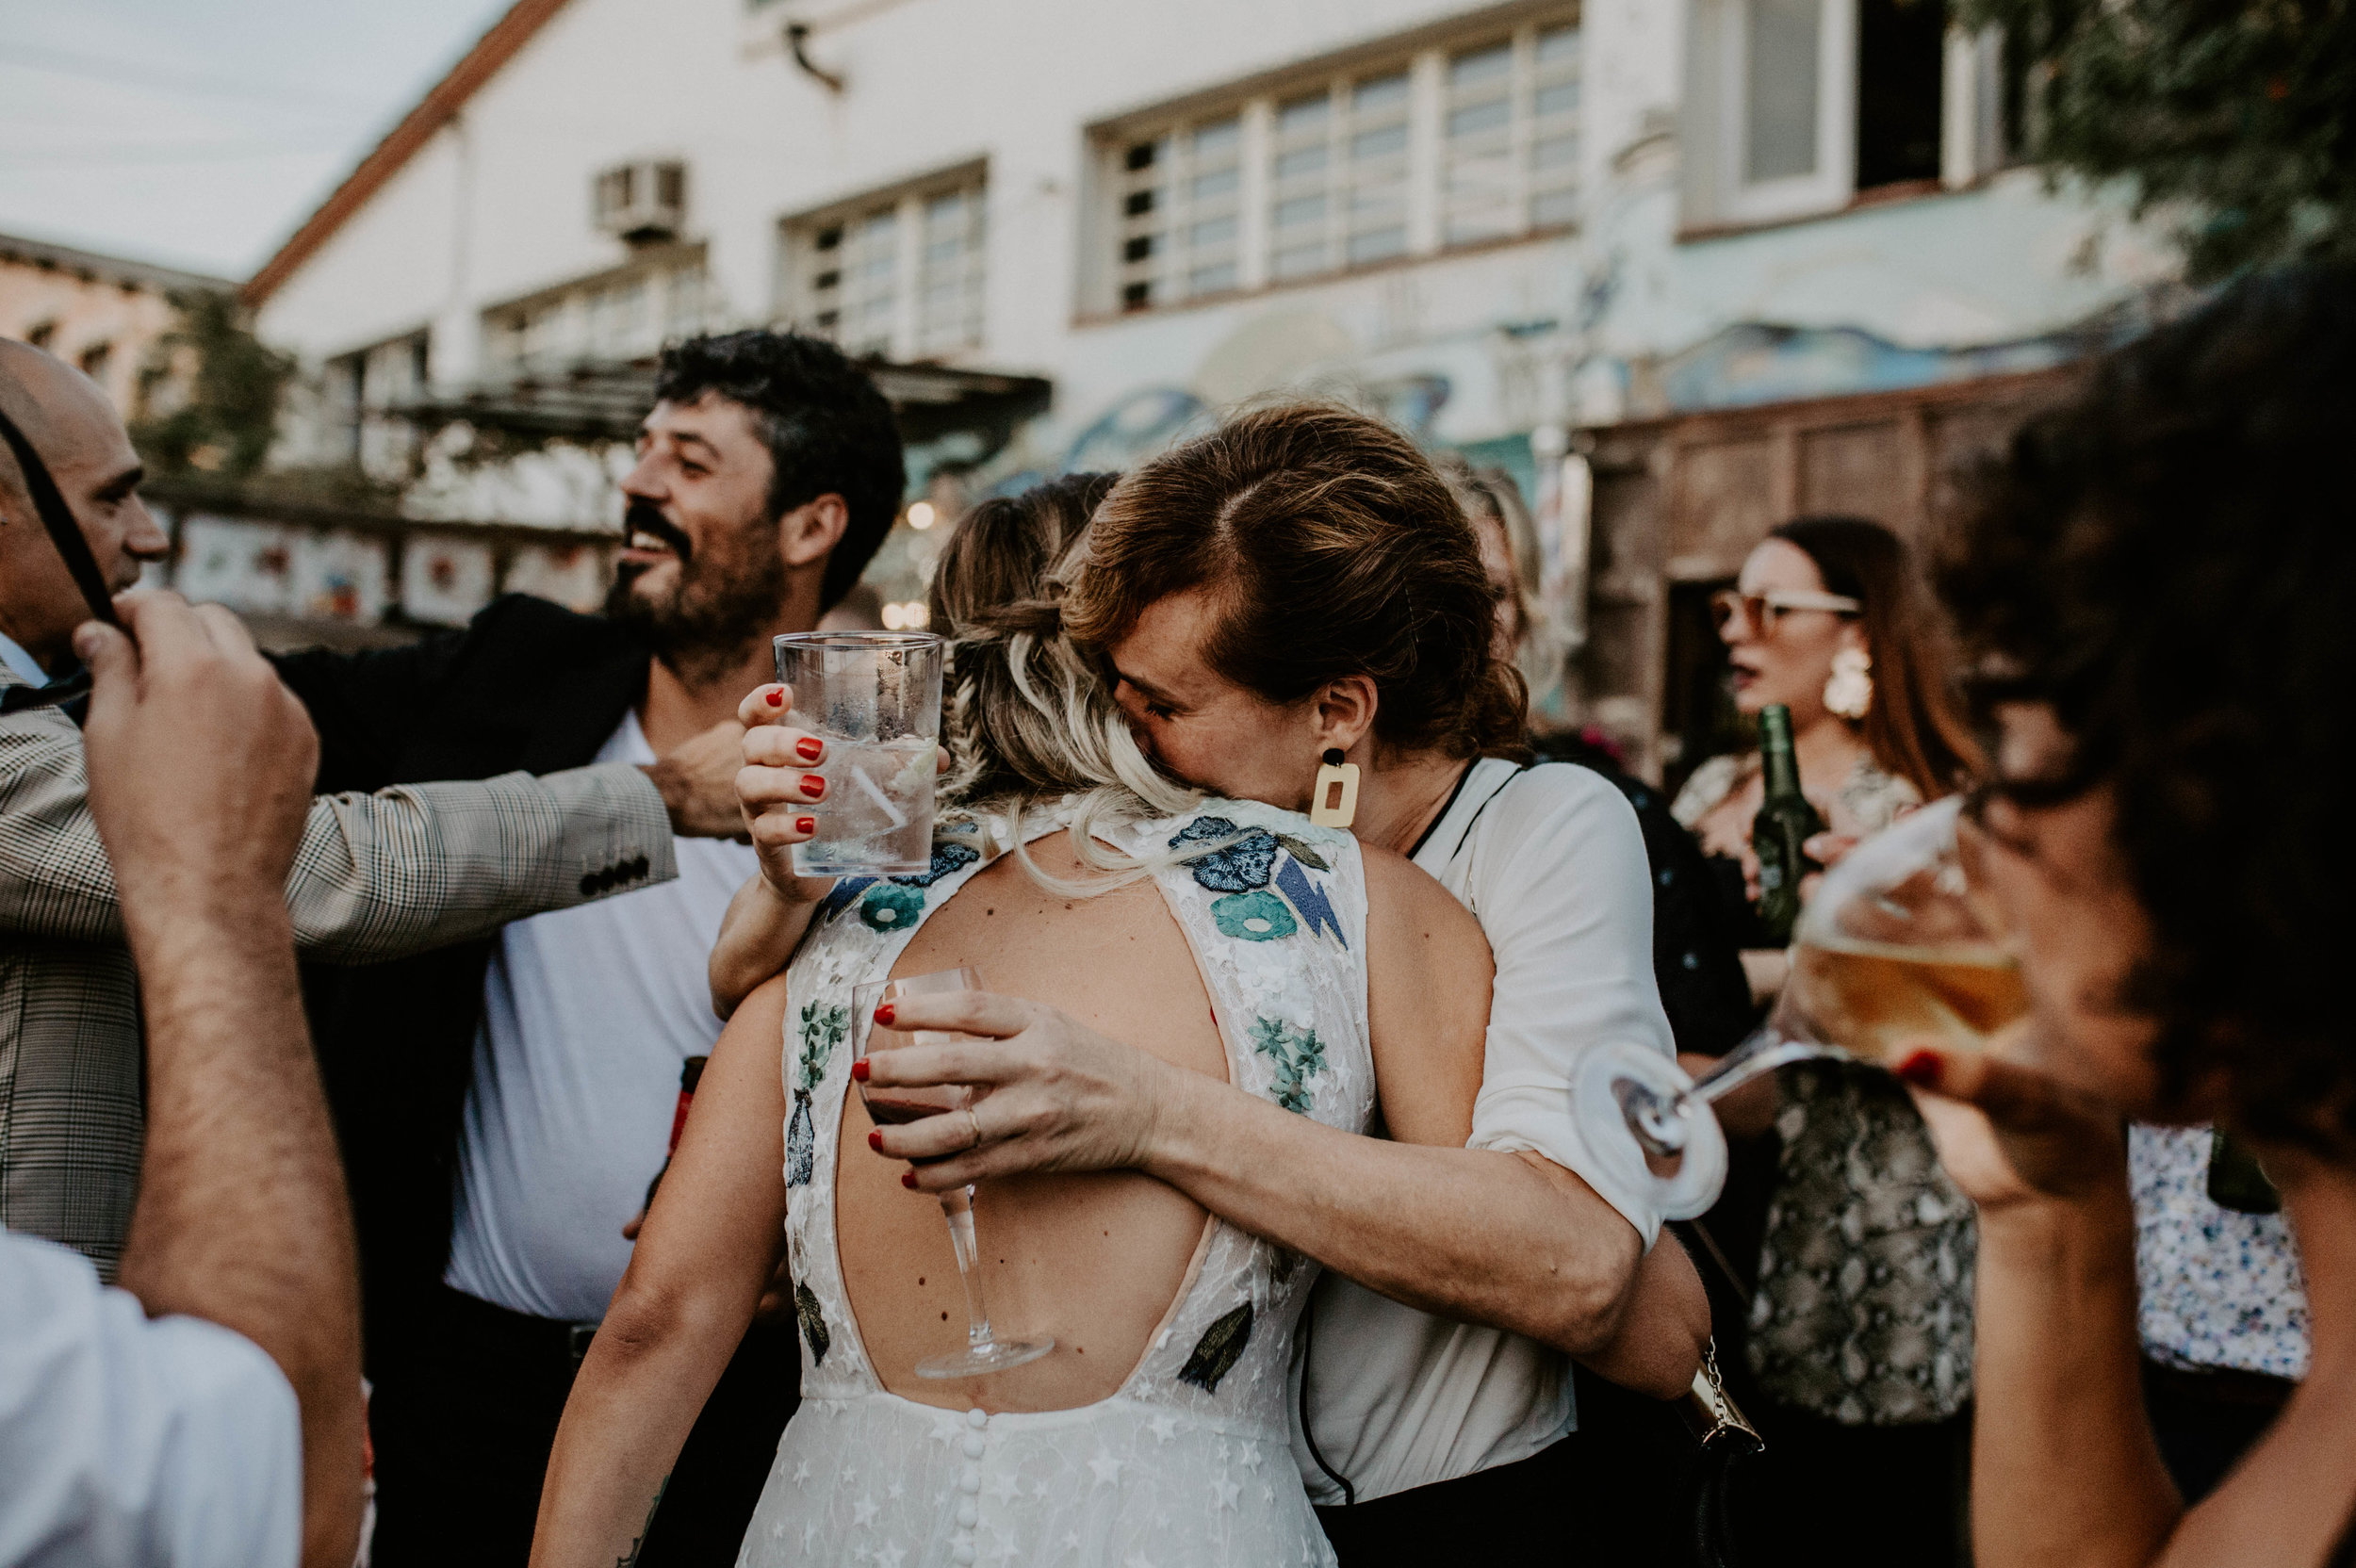 thenortherngirlphotography_bodasindustriales_bodasdiferentes_weddingphotographer_spanishphotographer_spanisgweddingphotographer_happyendings_mercantic_elsiglomercantic_antichrist_love_neon_weddingtattoo_CYNTHIAMANOLO-537.jpg